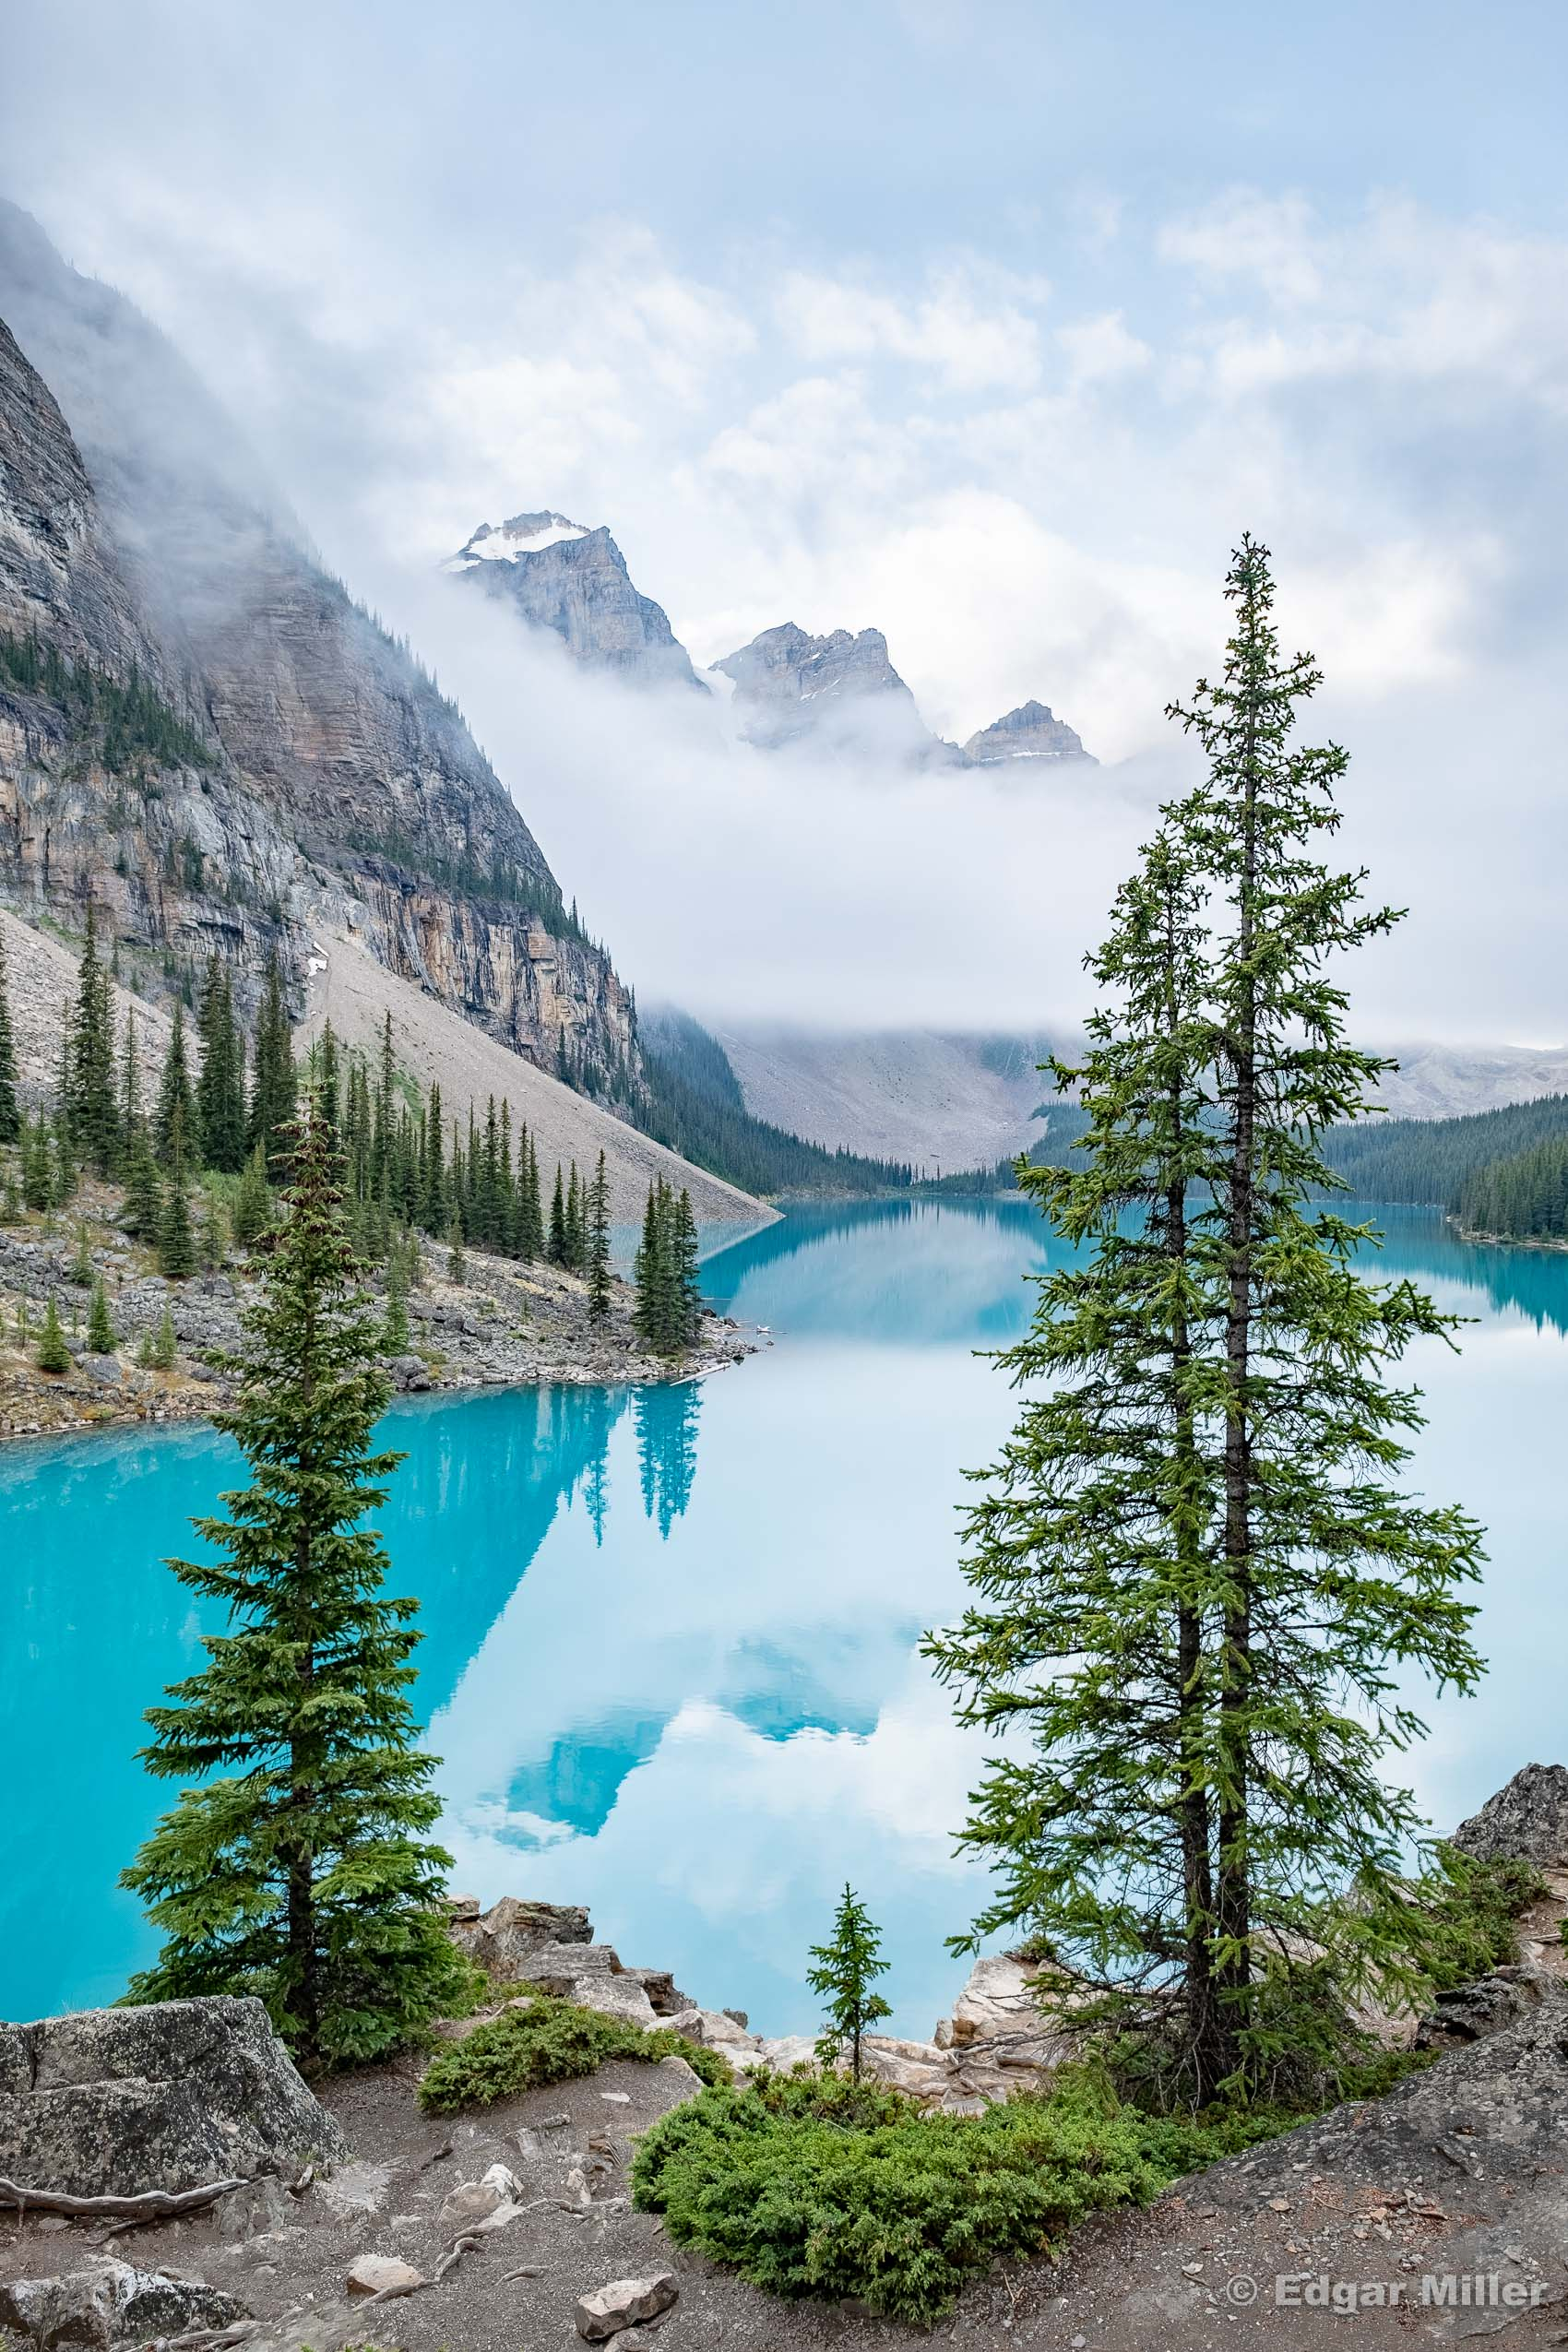 Clearing Clouds at Moraine Lake, Canada